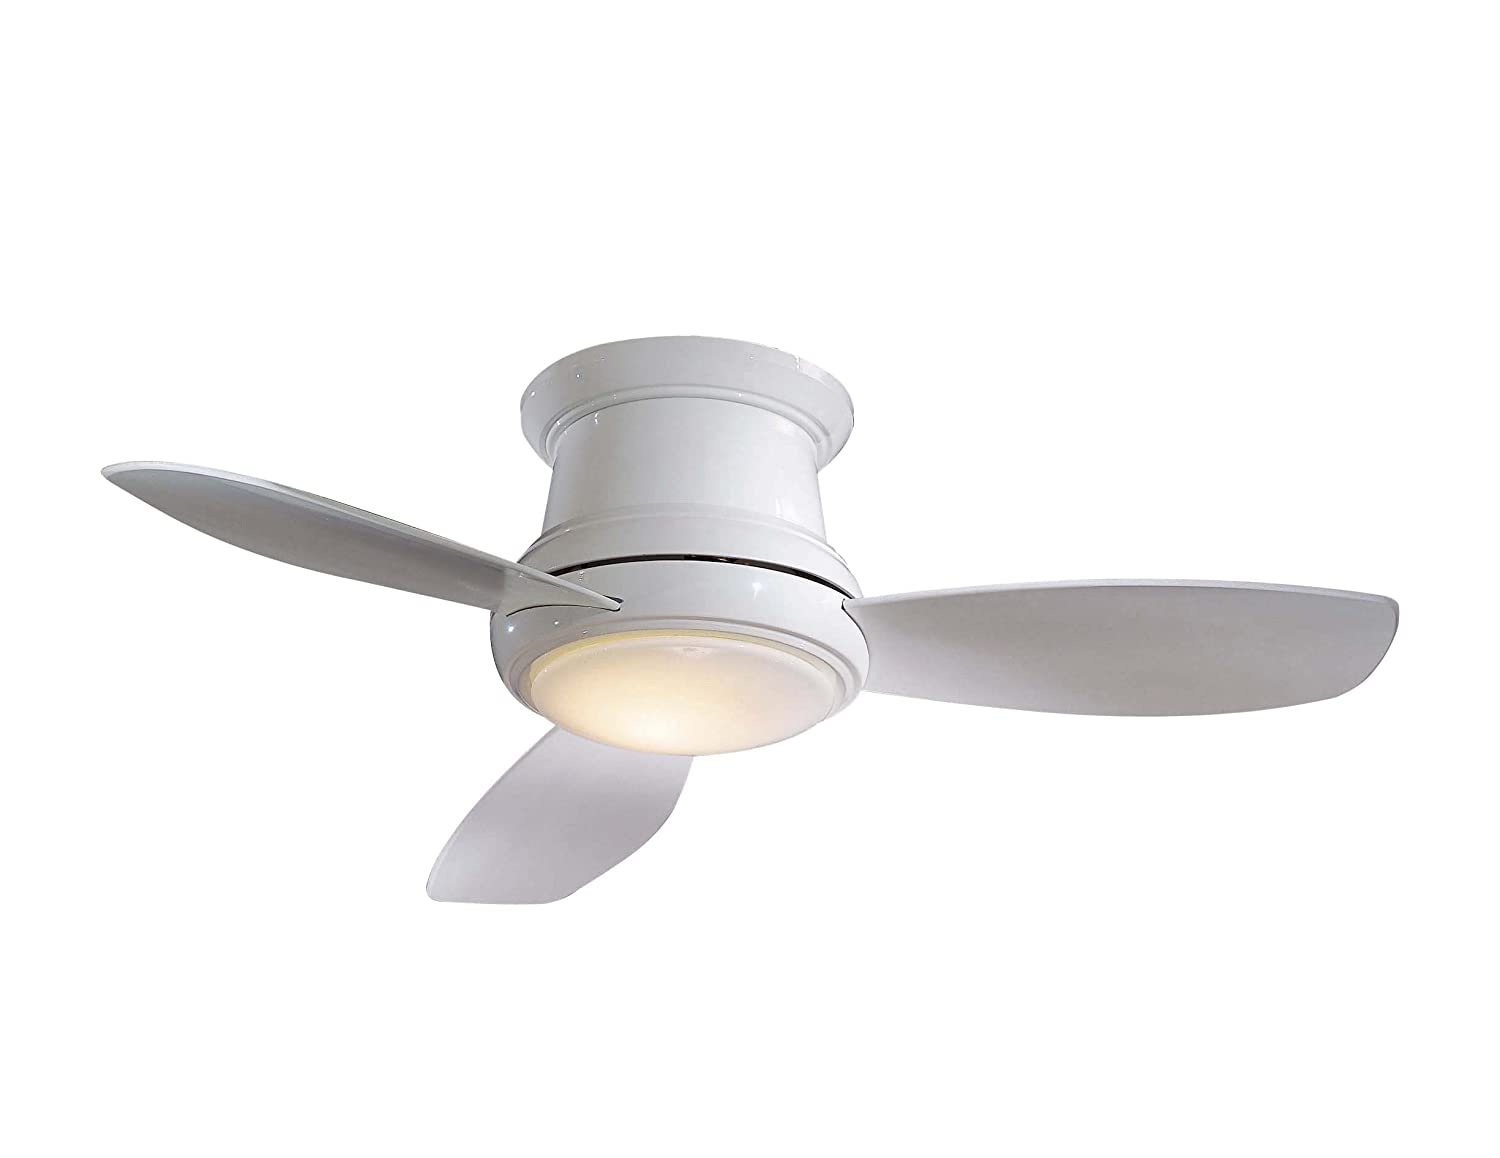 Minka aire f518 wh concept ii 44 ceiling fan white amazon aloadofball Choice Image